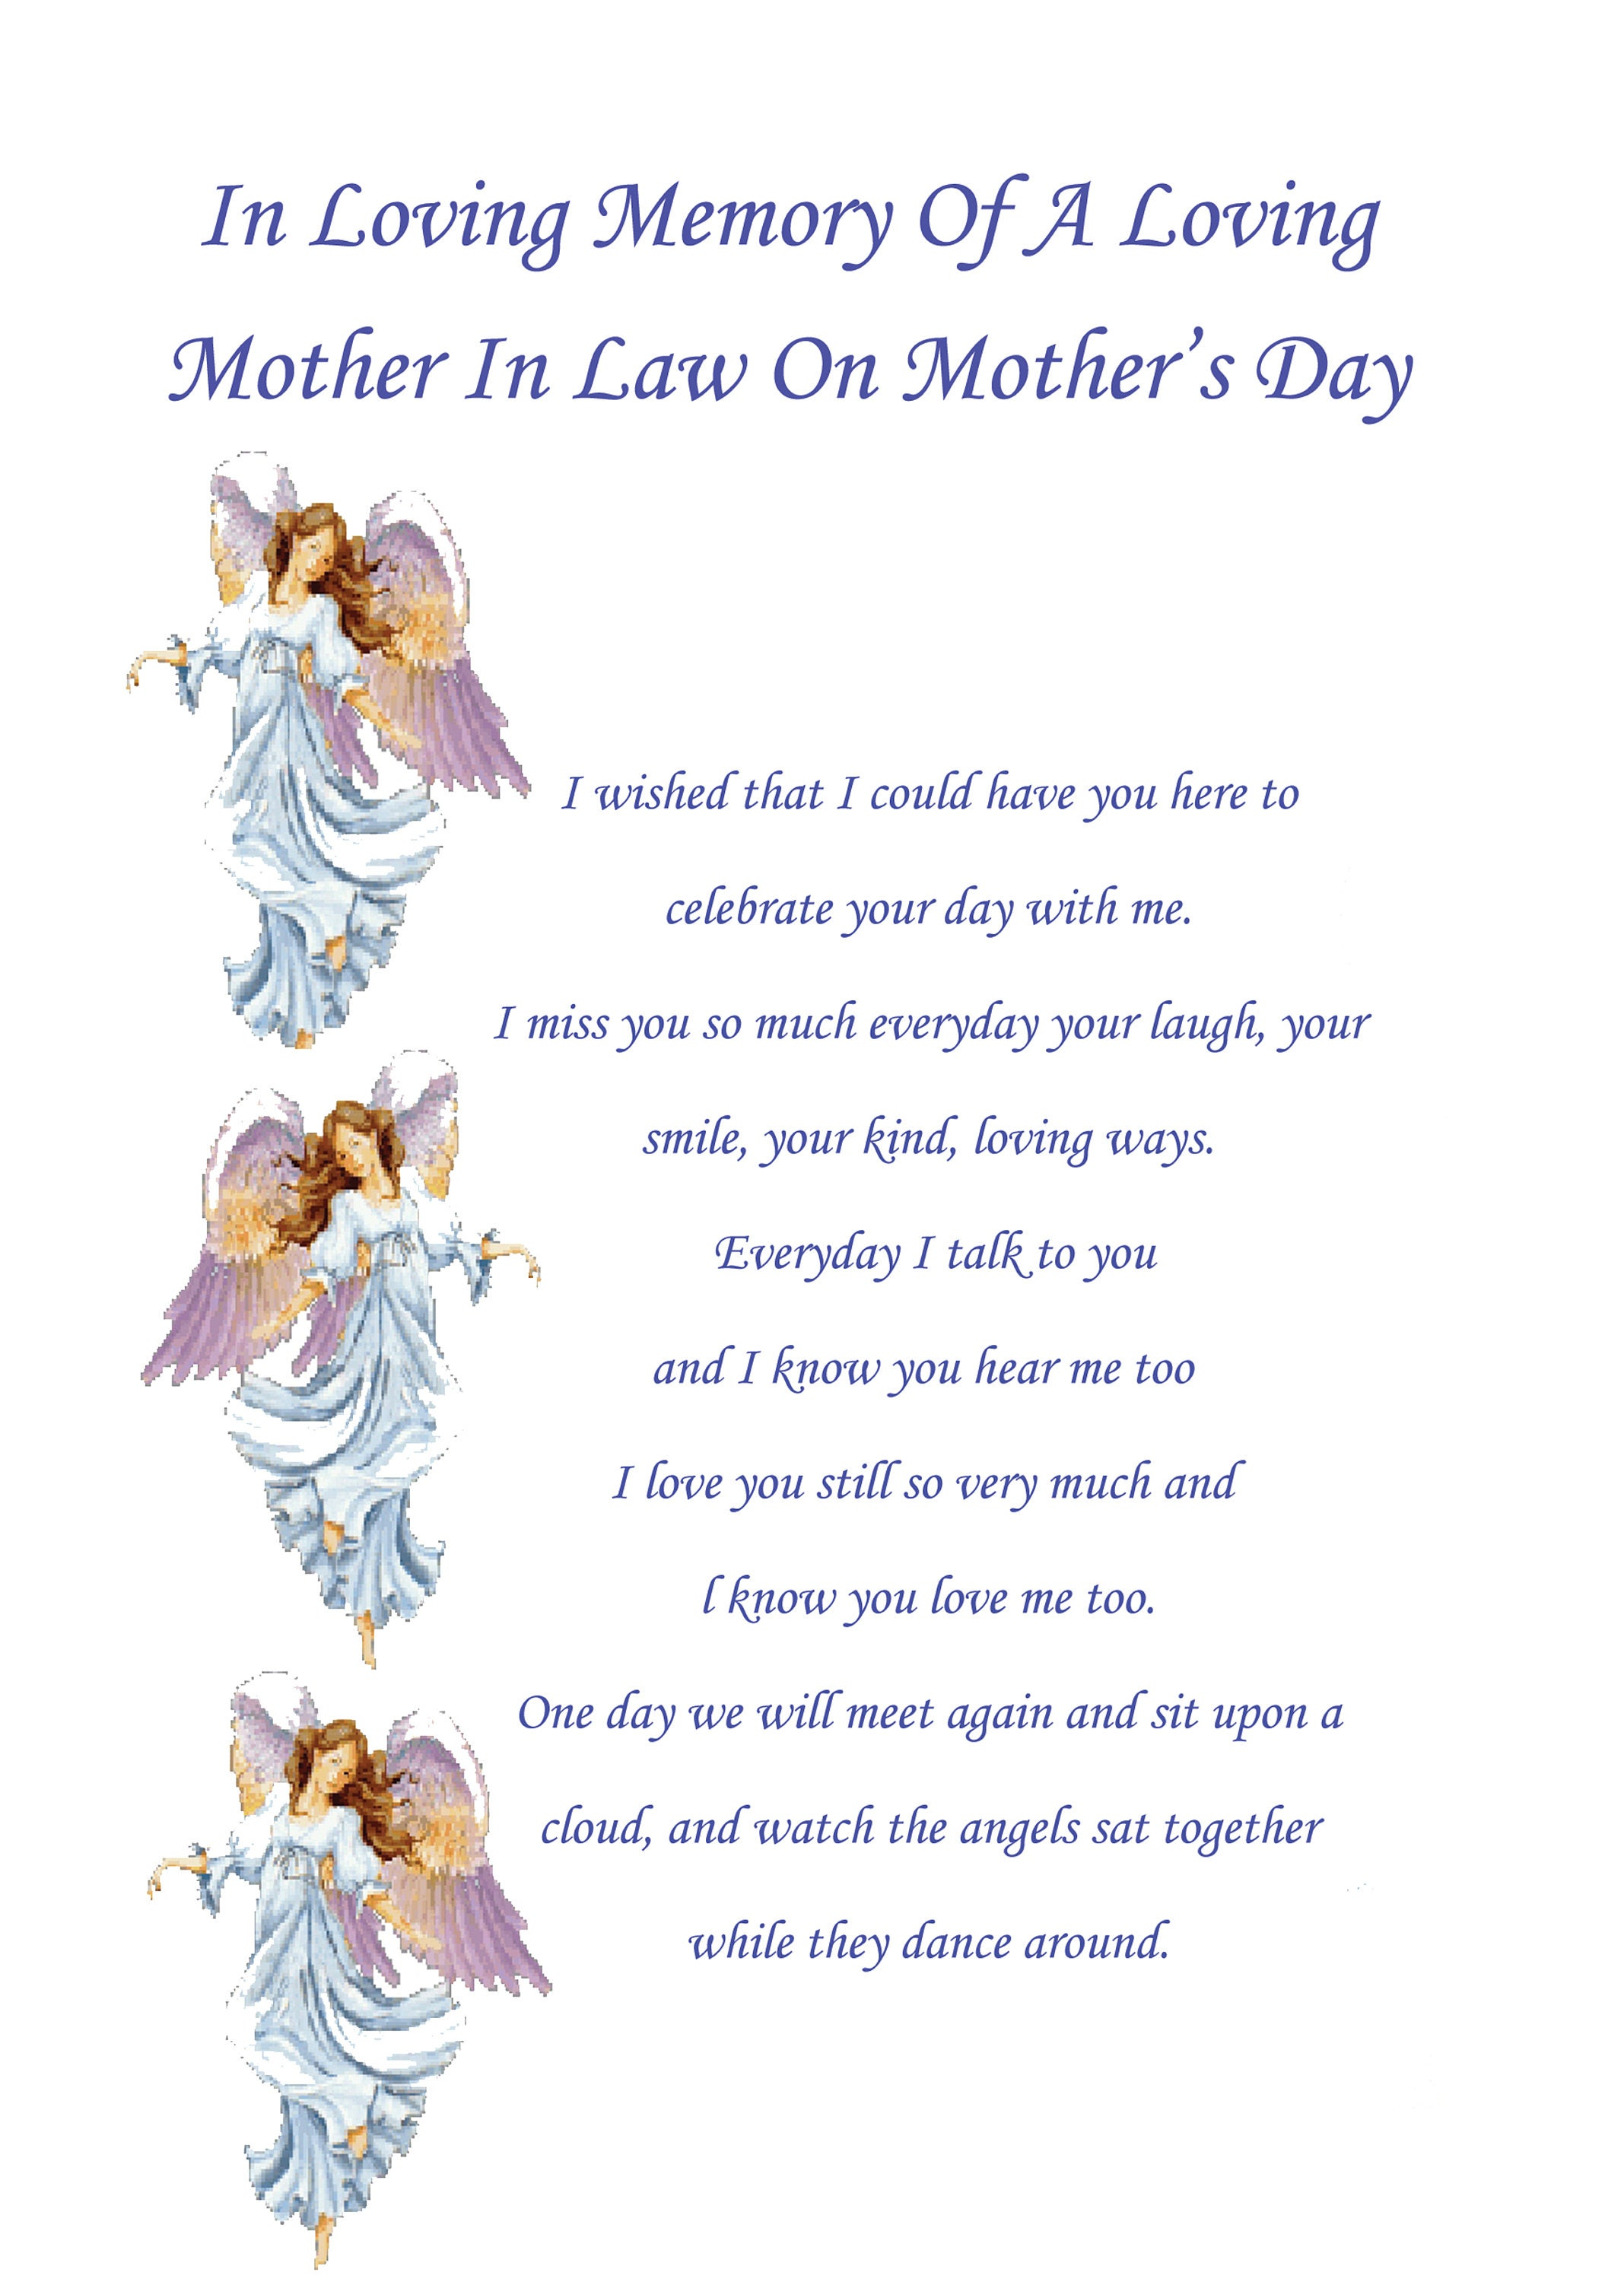 Mother In Law In Memory Mothers Day Card